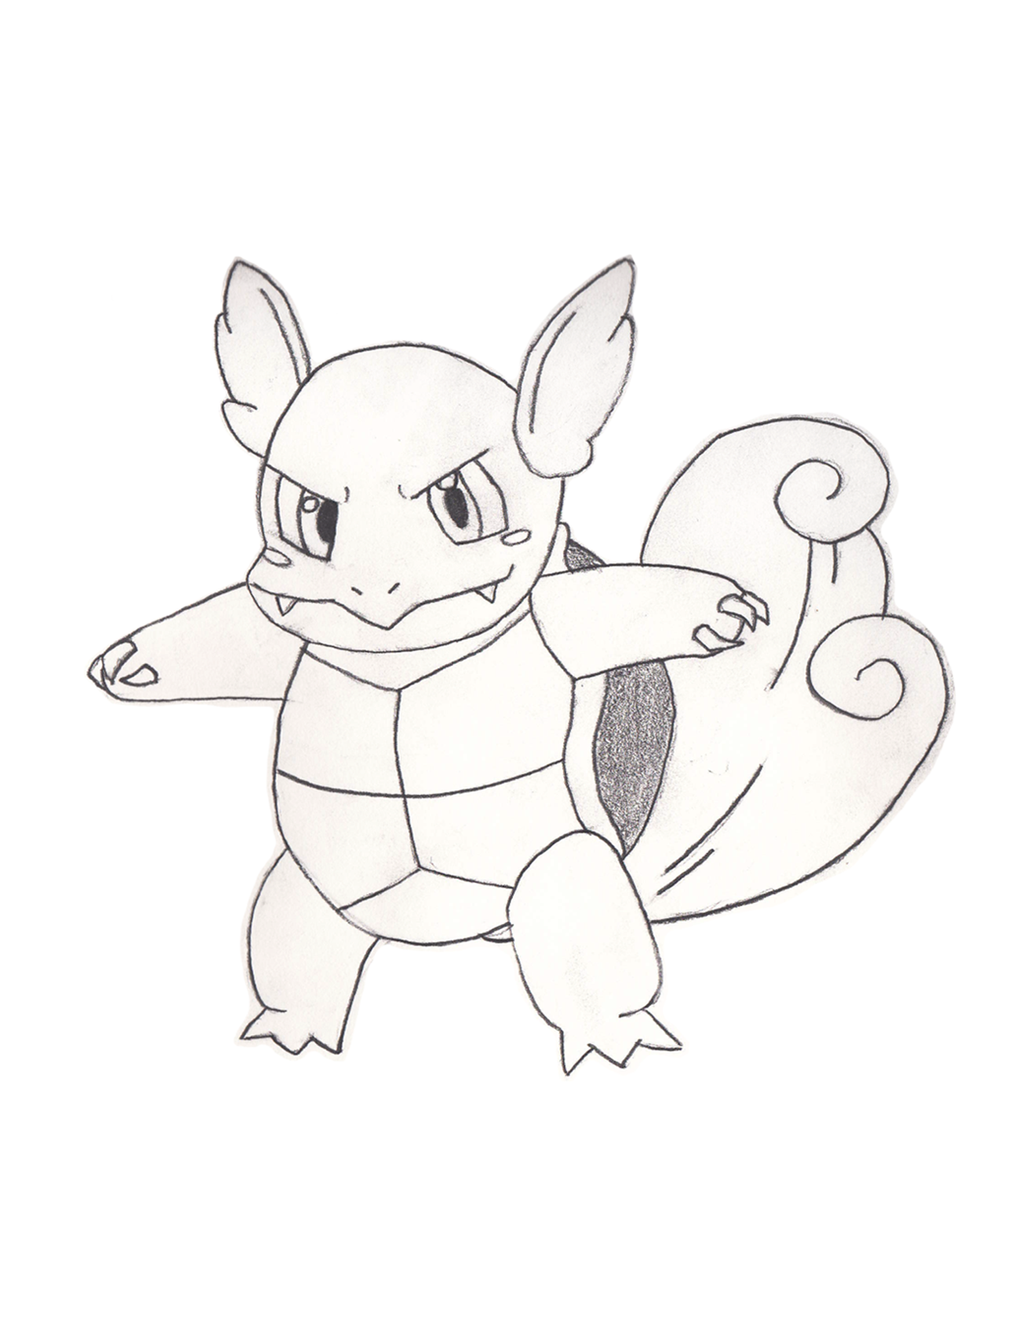 Wartortle sketch by BoomKey on DeviantArt